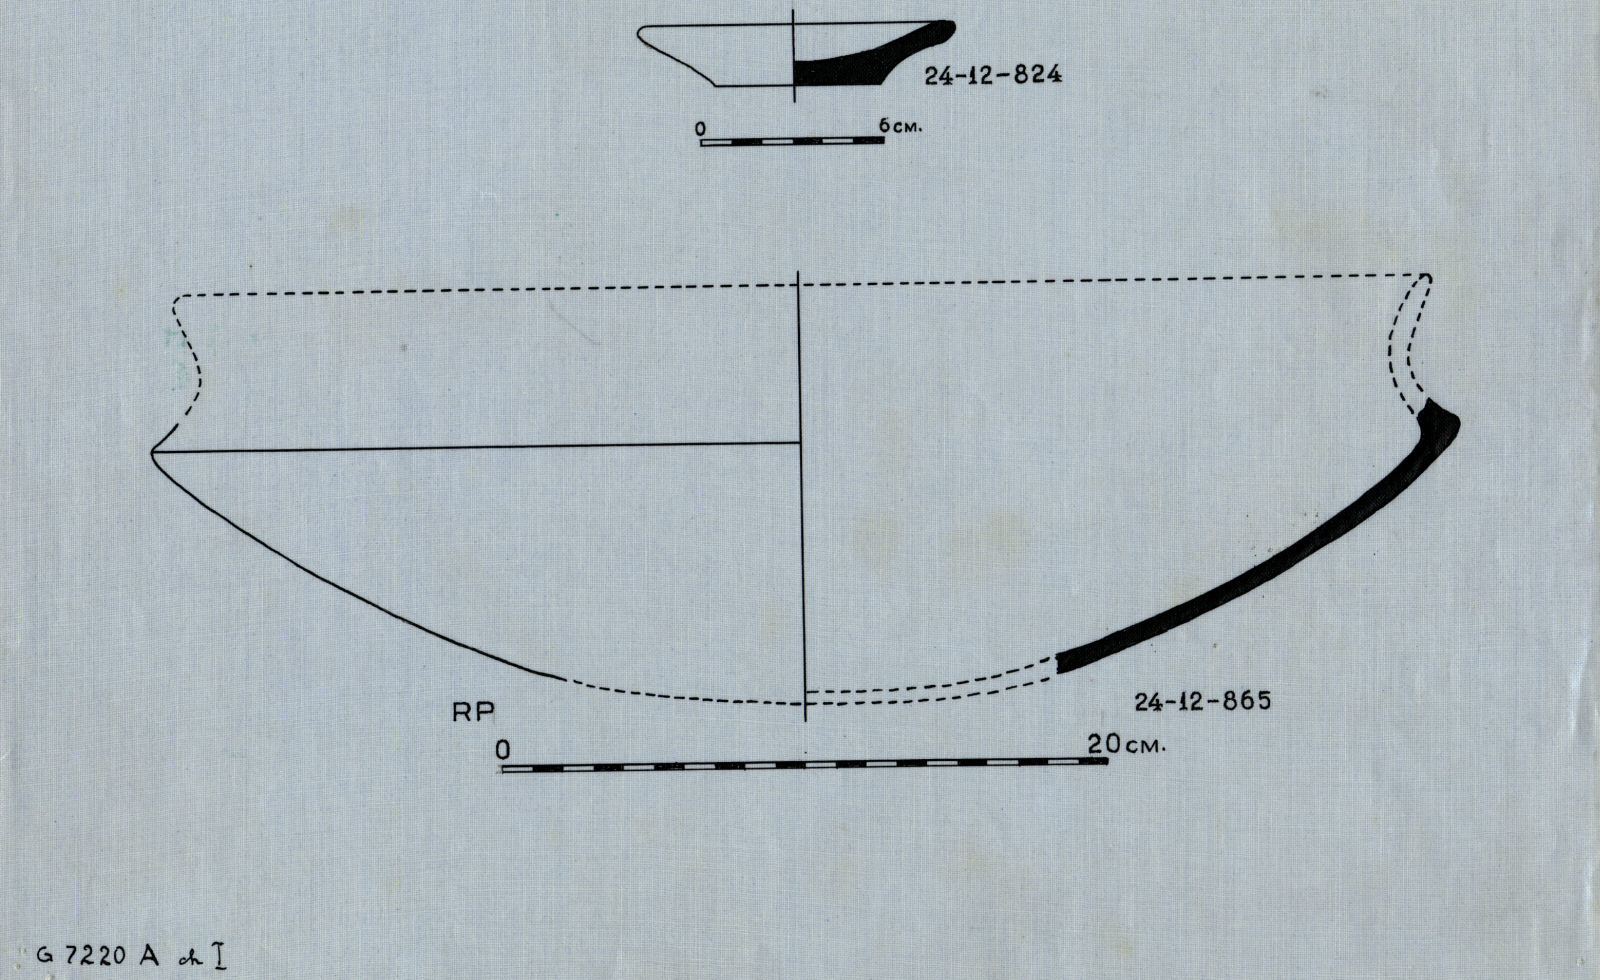 Drawings: G 7220, Shaft A: pottery, bowl with recurved rim and model dish